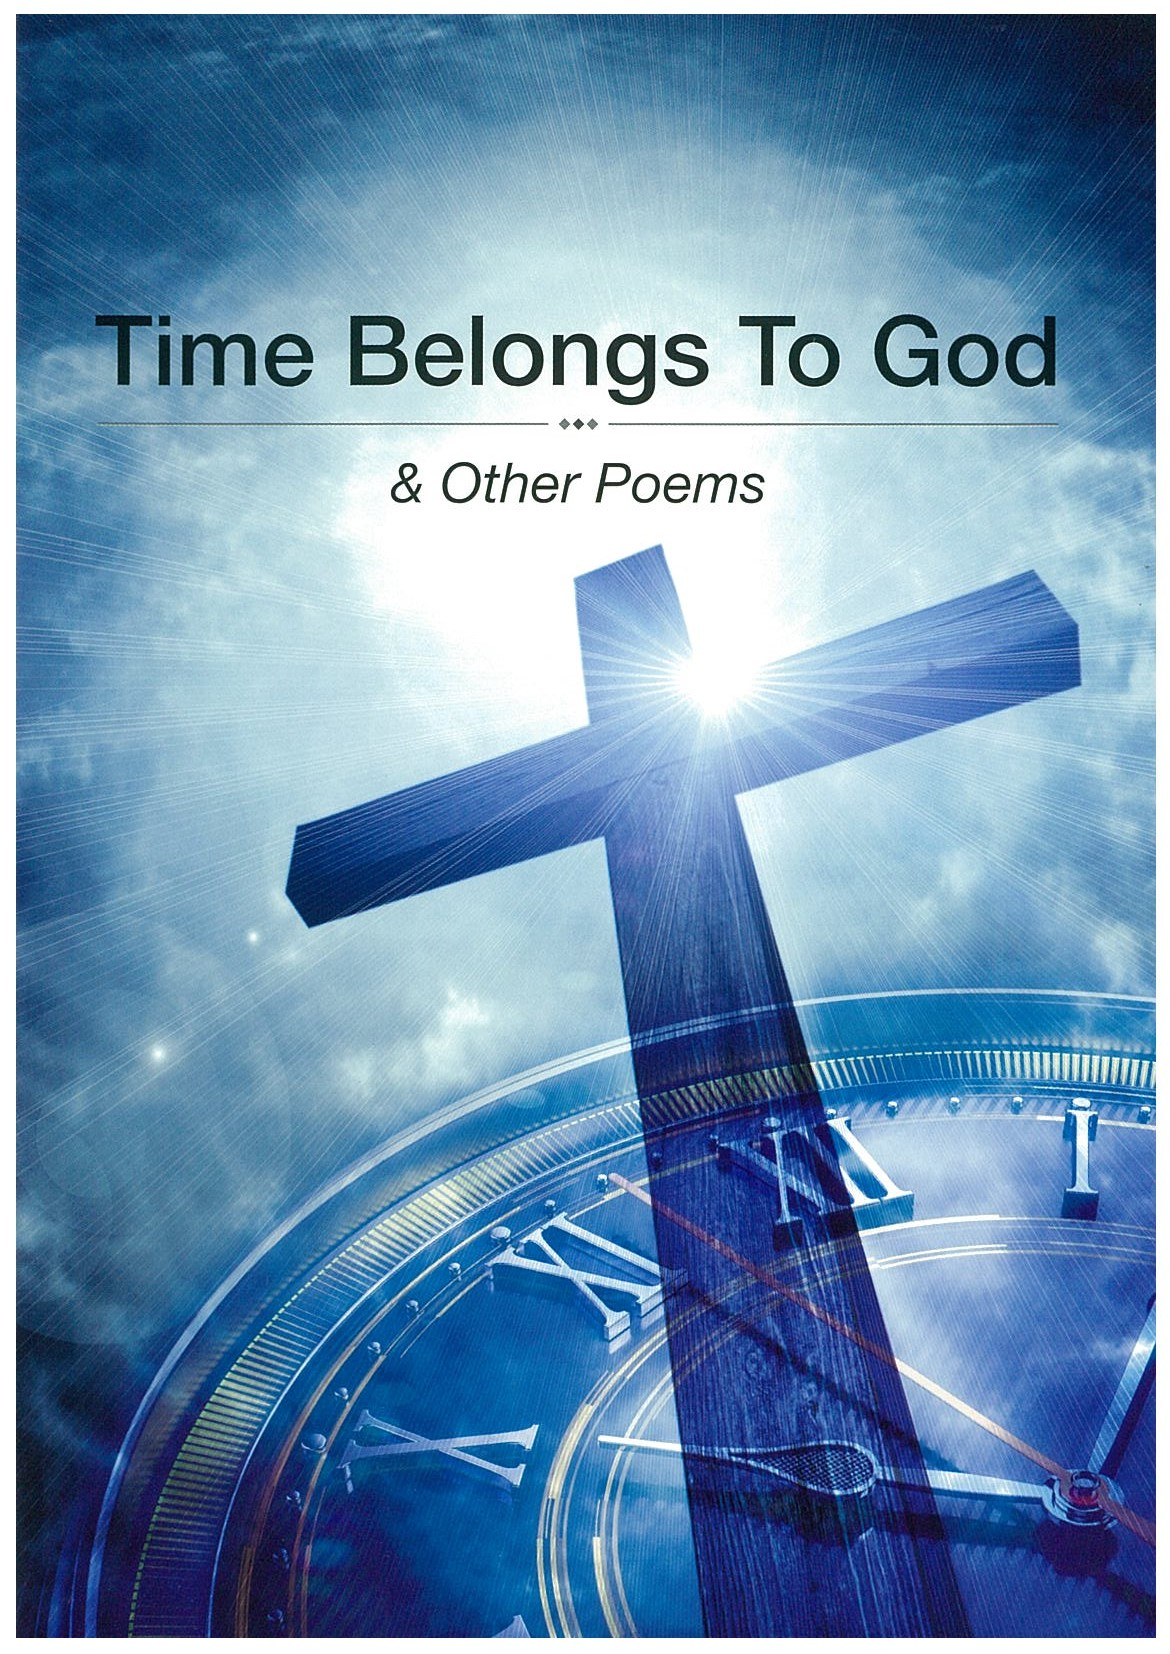 Time Belongs to God & Other Poems